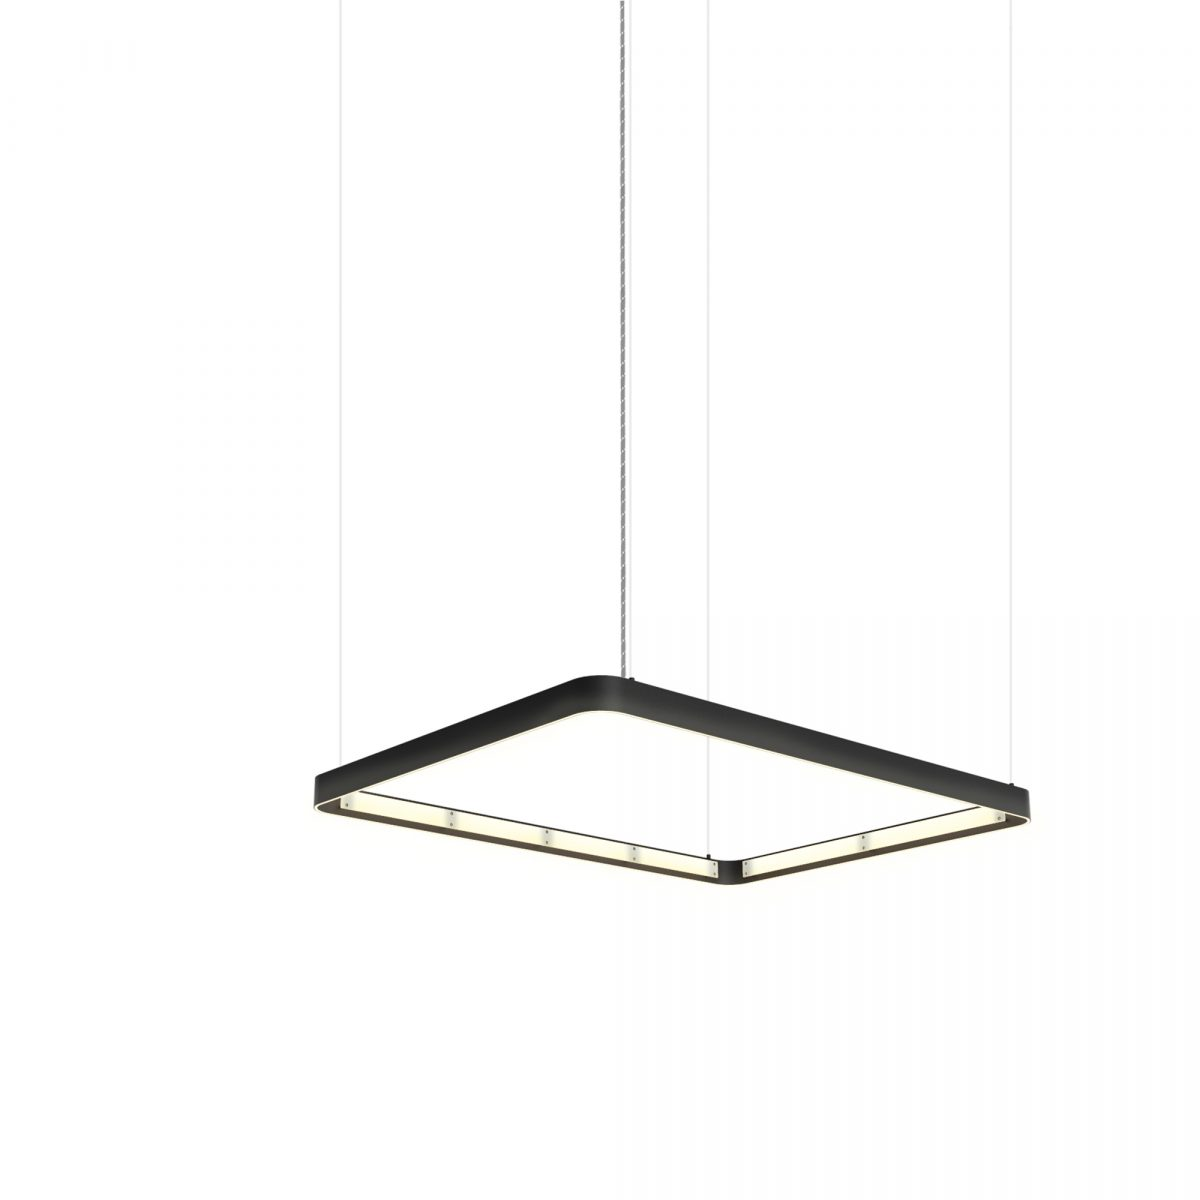 JSPR Eden Deco 75×100 Black Rectangle